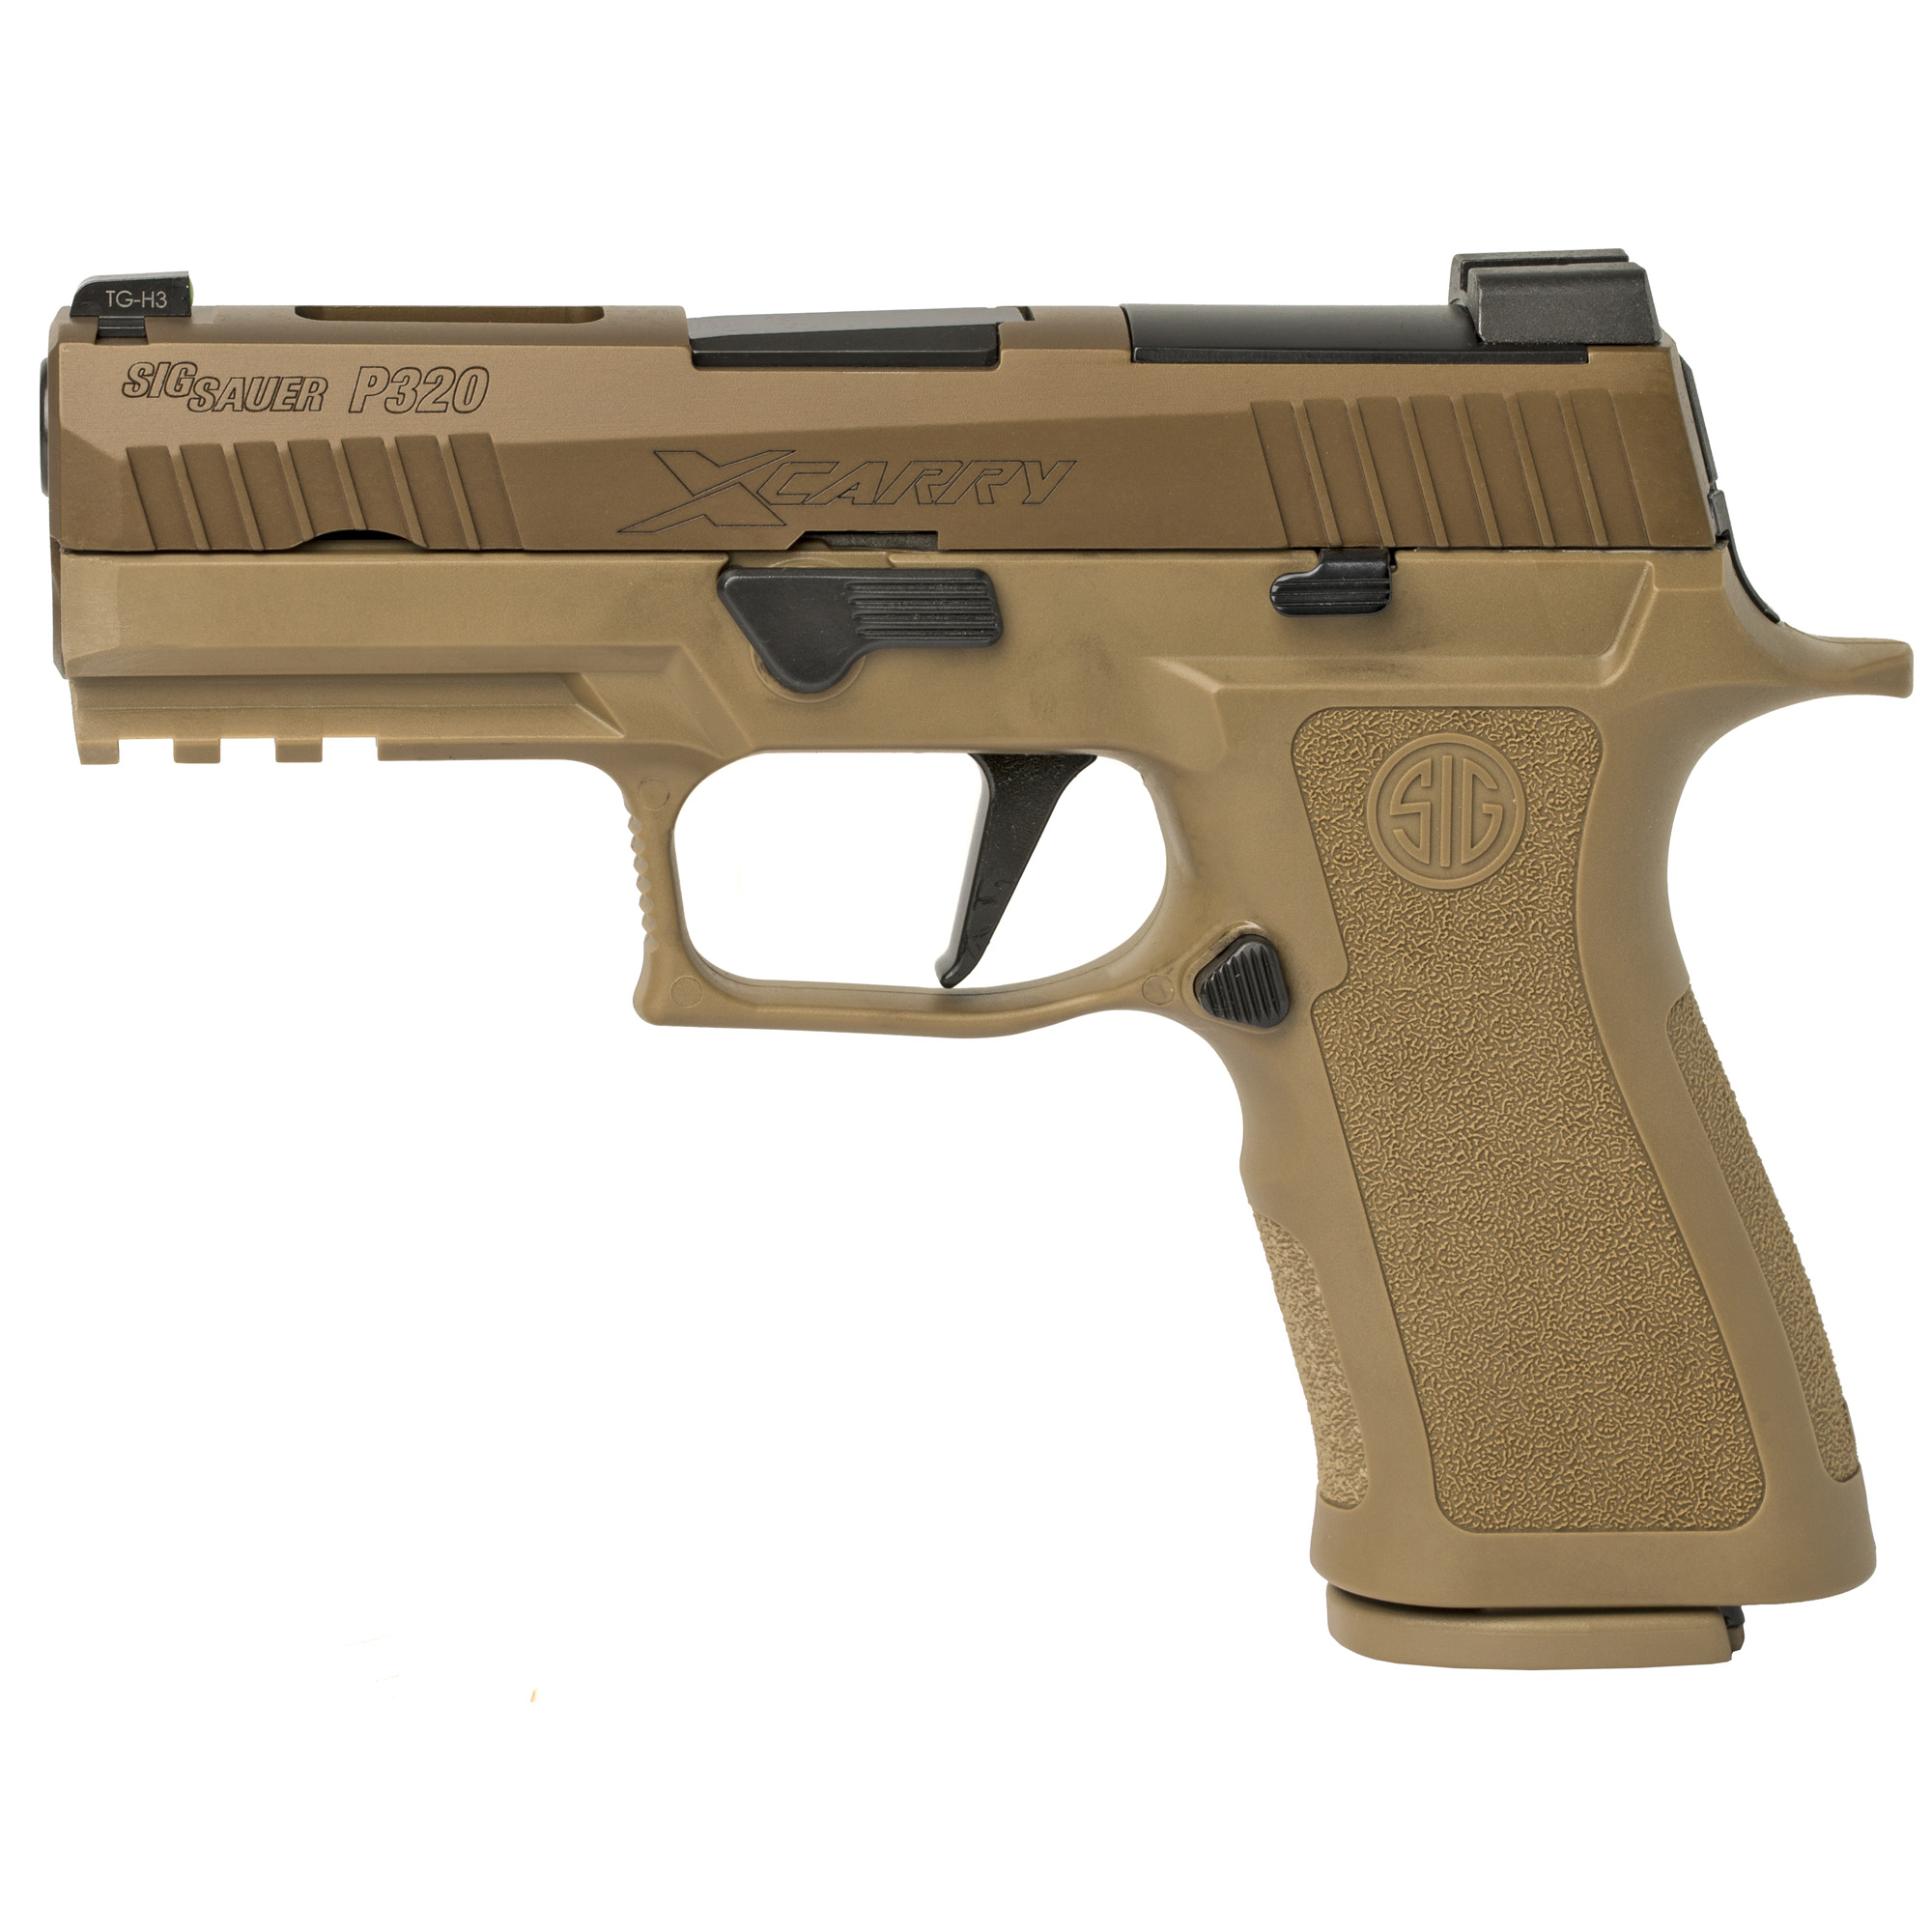 Sig Sauer P320 X-Carry, X-Ray Sights, Coyote - 9mm